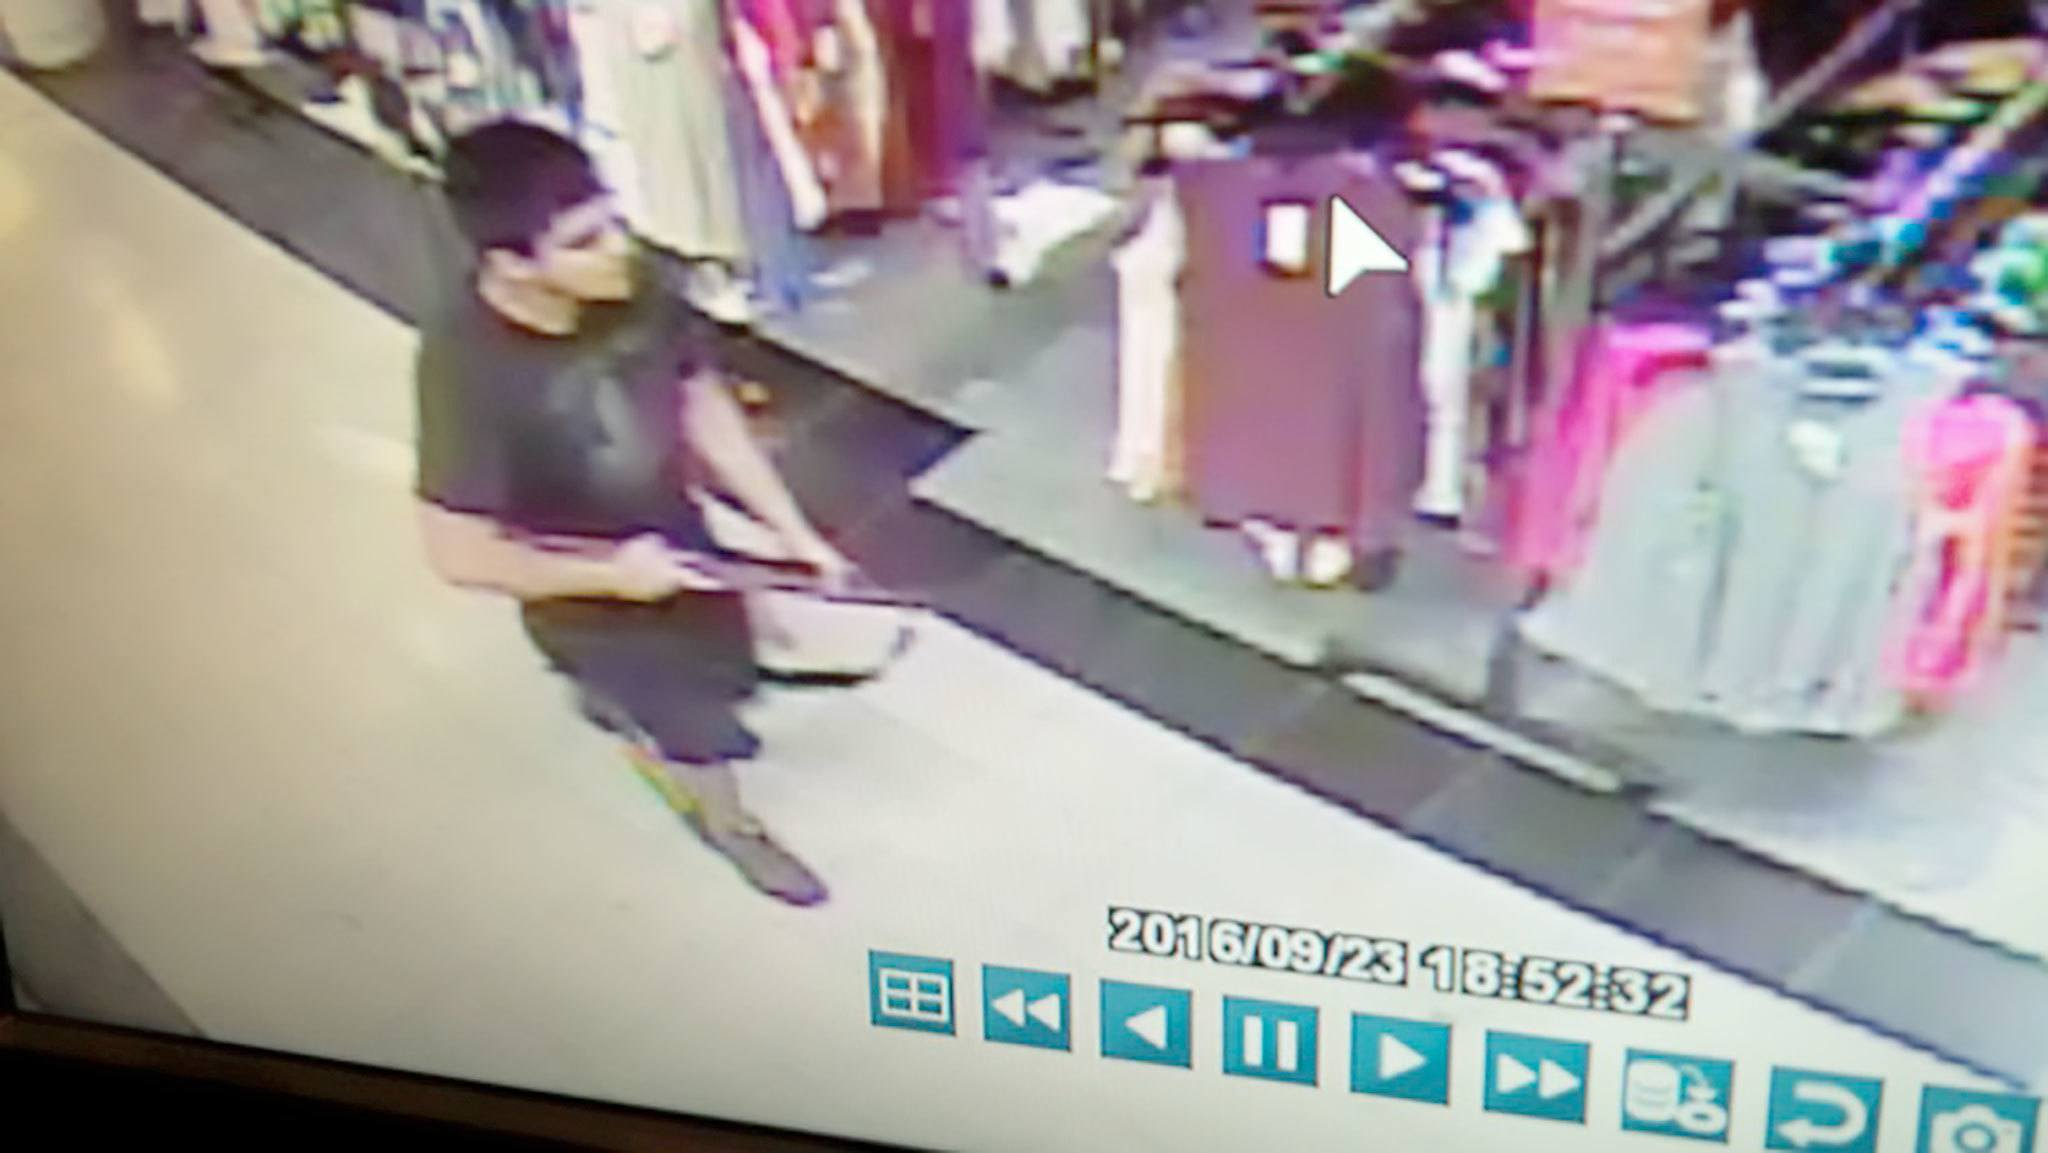 This image provided by police show a man entering the Macy's store at Cascade Mall in Burlington, where he fatally shot five people Friday night. (Skagit Multiple Agency Response Team)